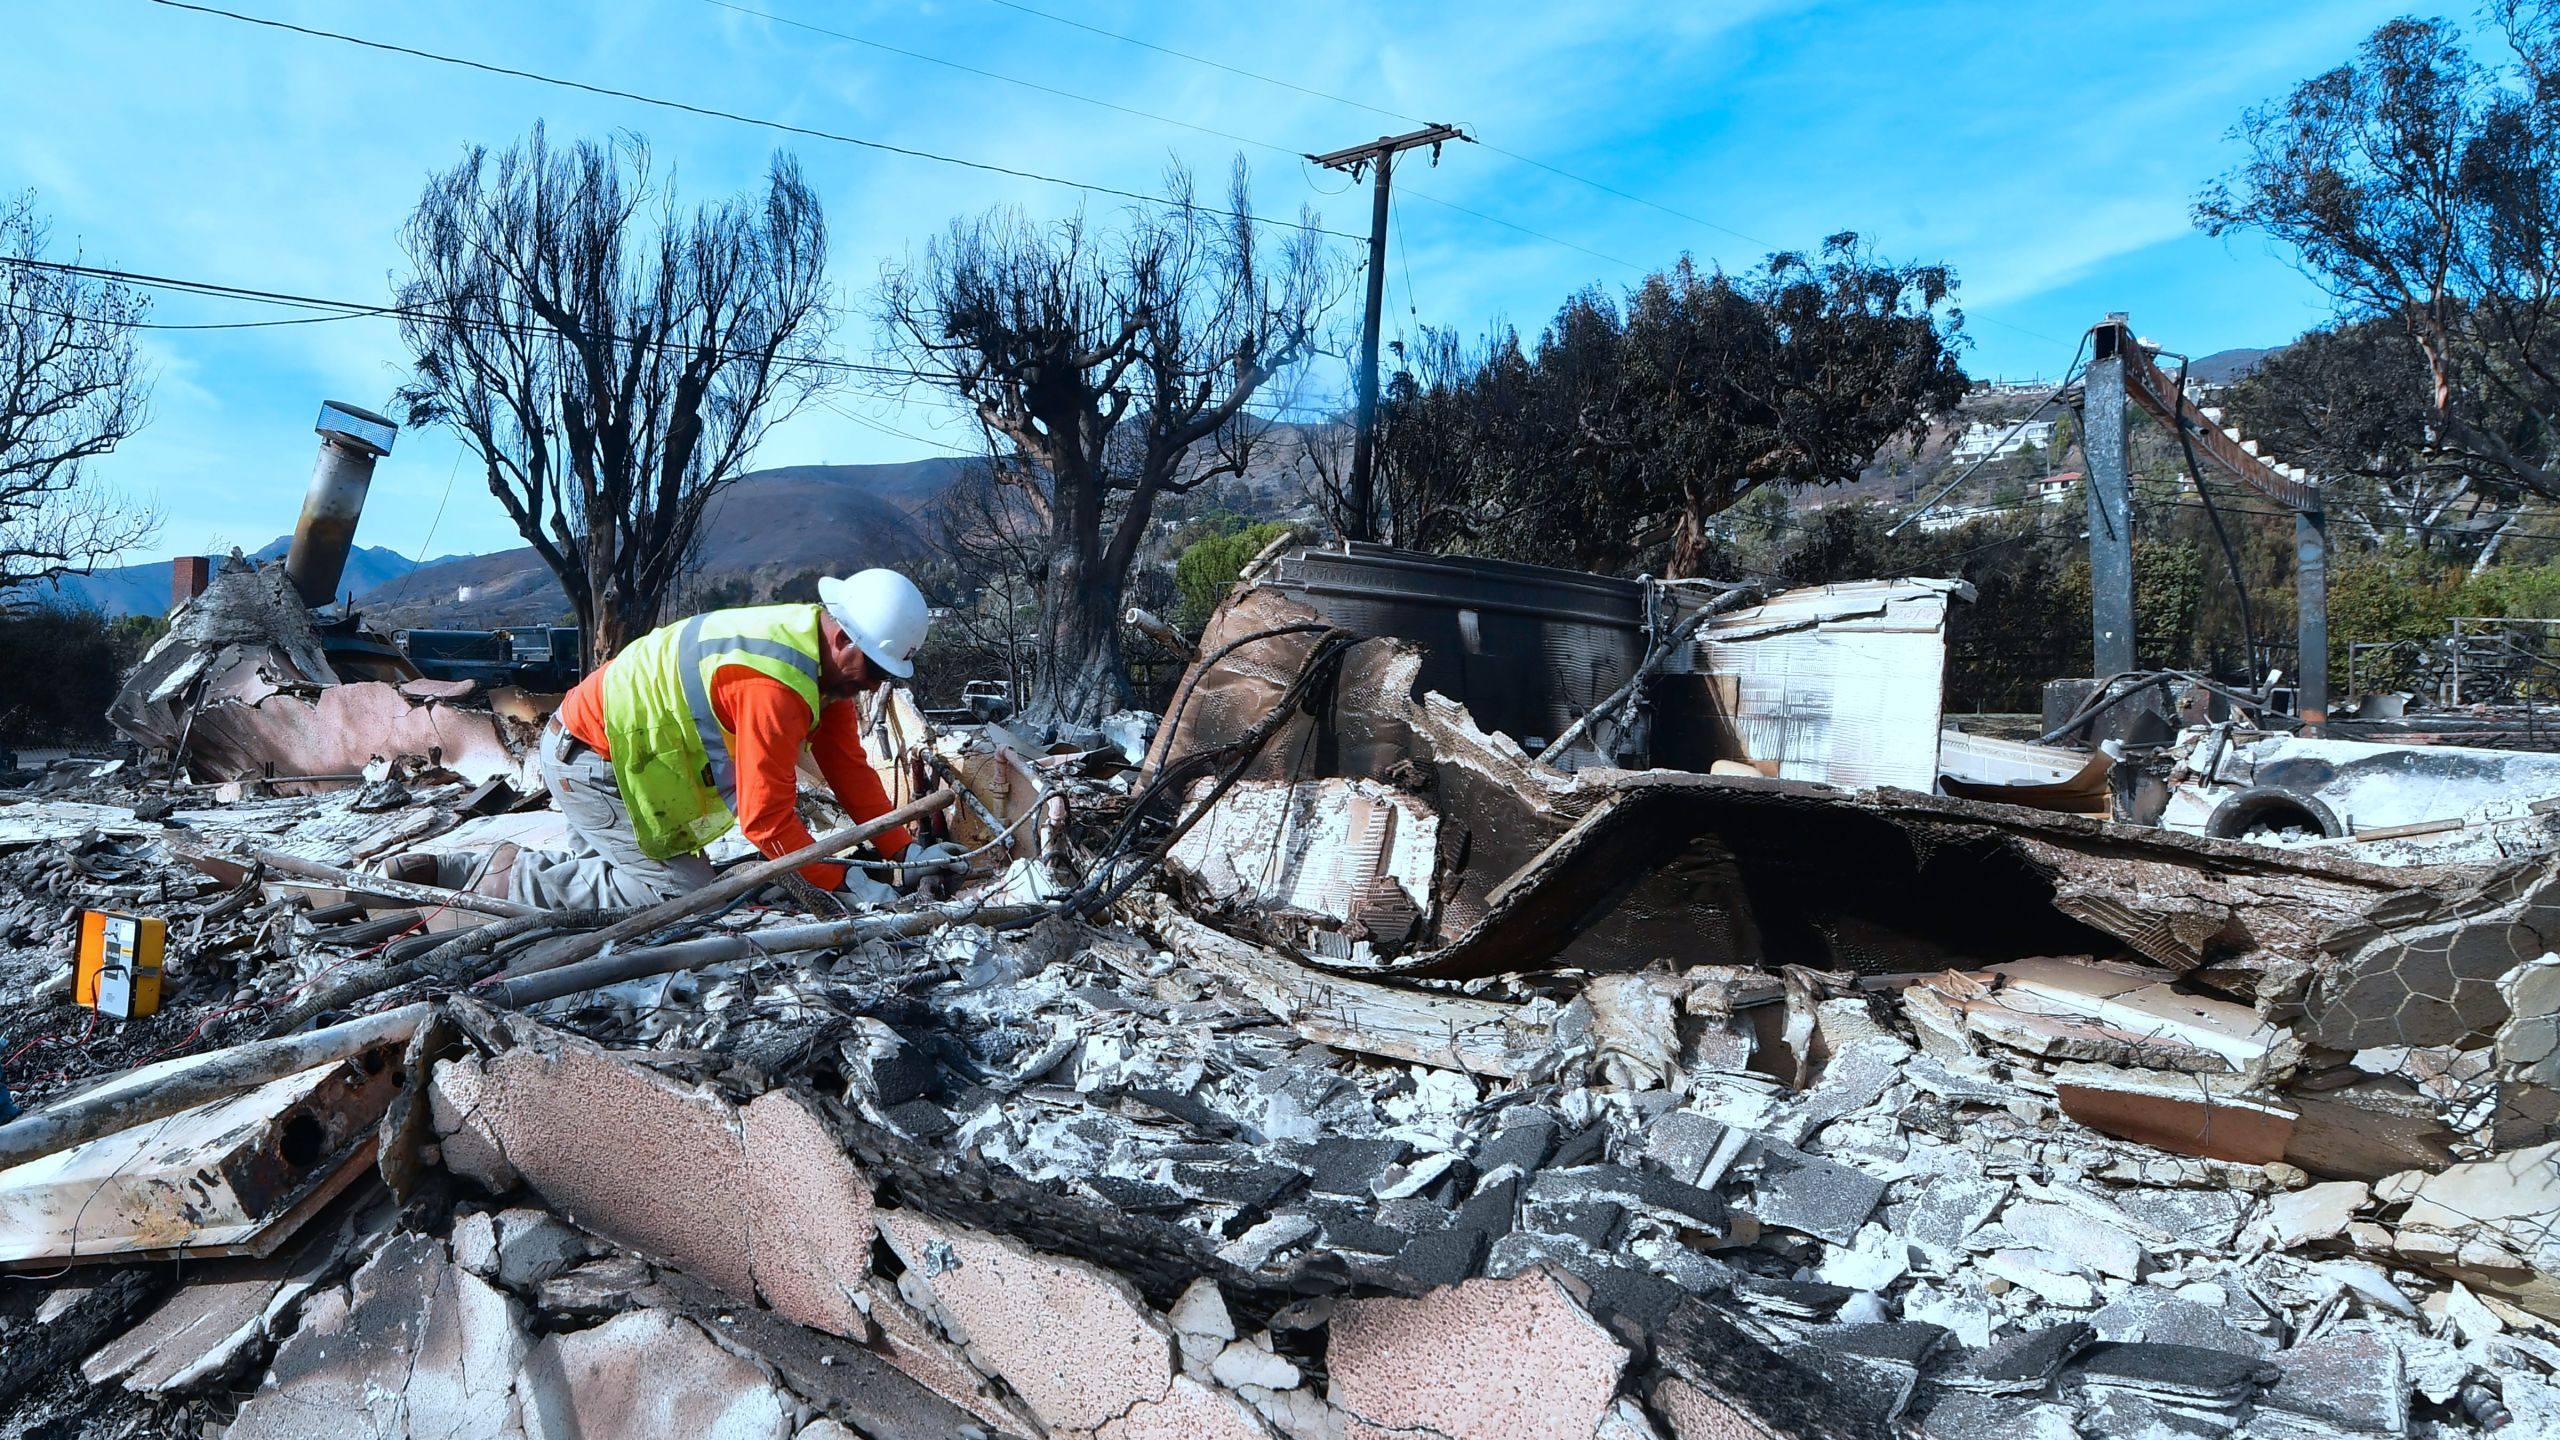 A worker checks gas lines amid the rubble of a home burnt down in the Woolsey Fire on Filaree Heights Road in Malibu, California on November 13, 2018. (Credit: Frederic J. Brown/AFP/Getty Images)